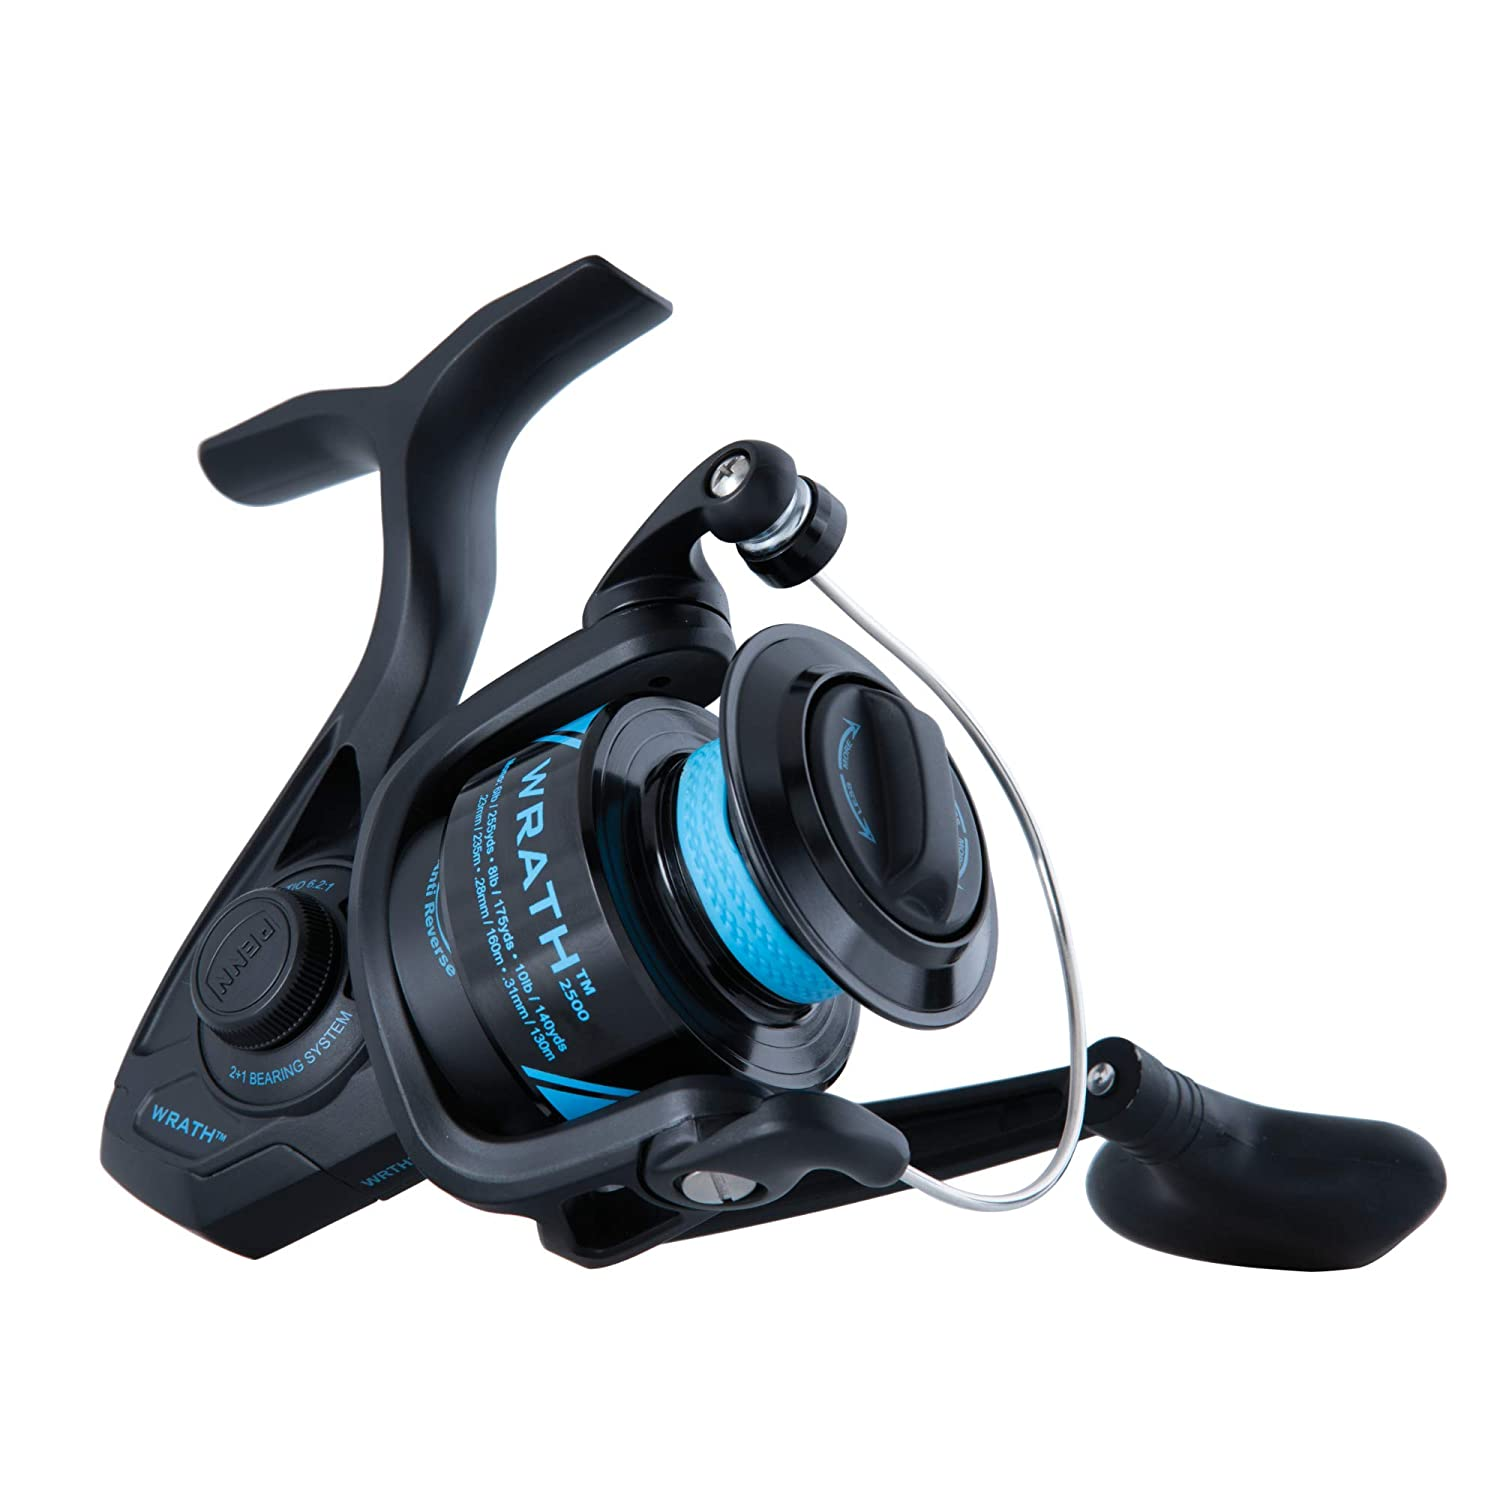 PENN Wrath Spinning Fishing Reel – WRTH2500C